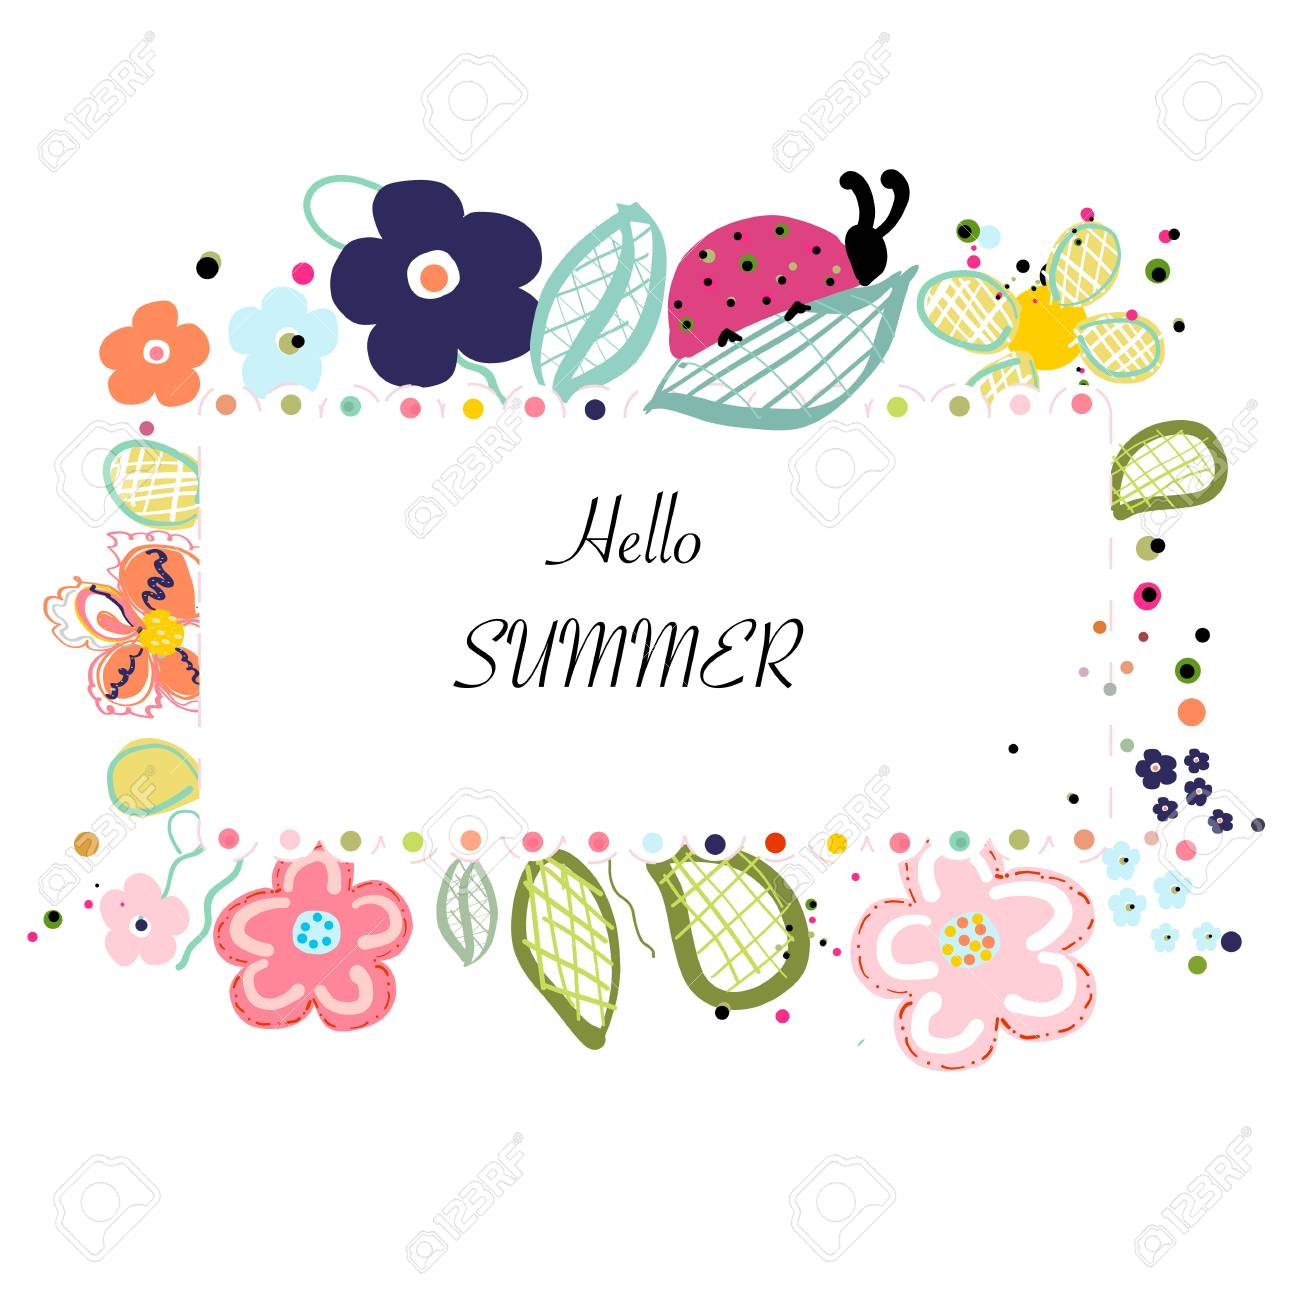 Abstract decorative summer flowers background - 112140231